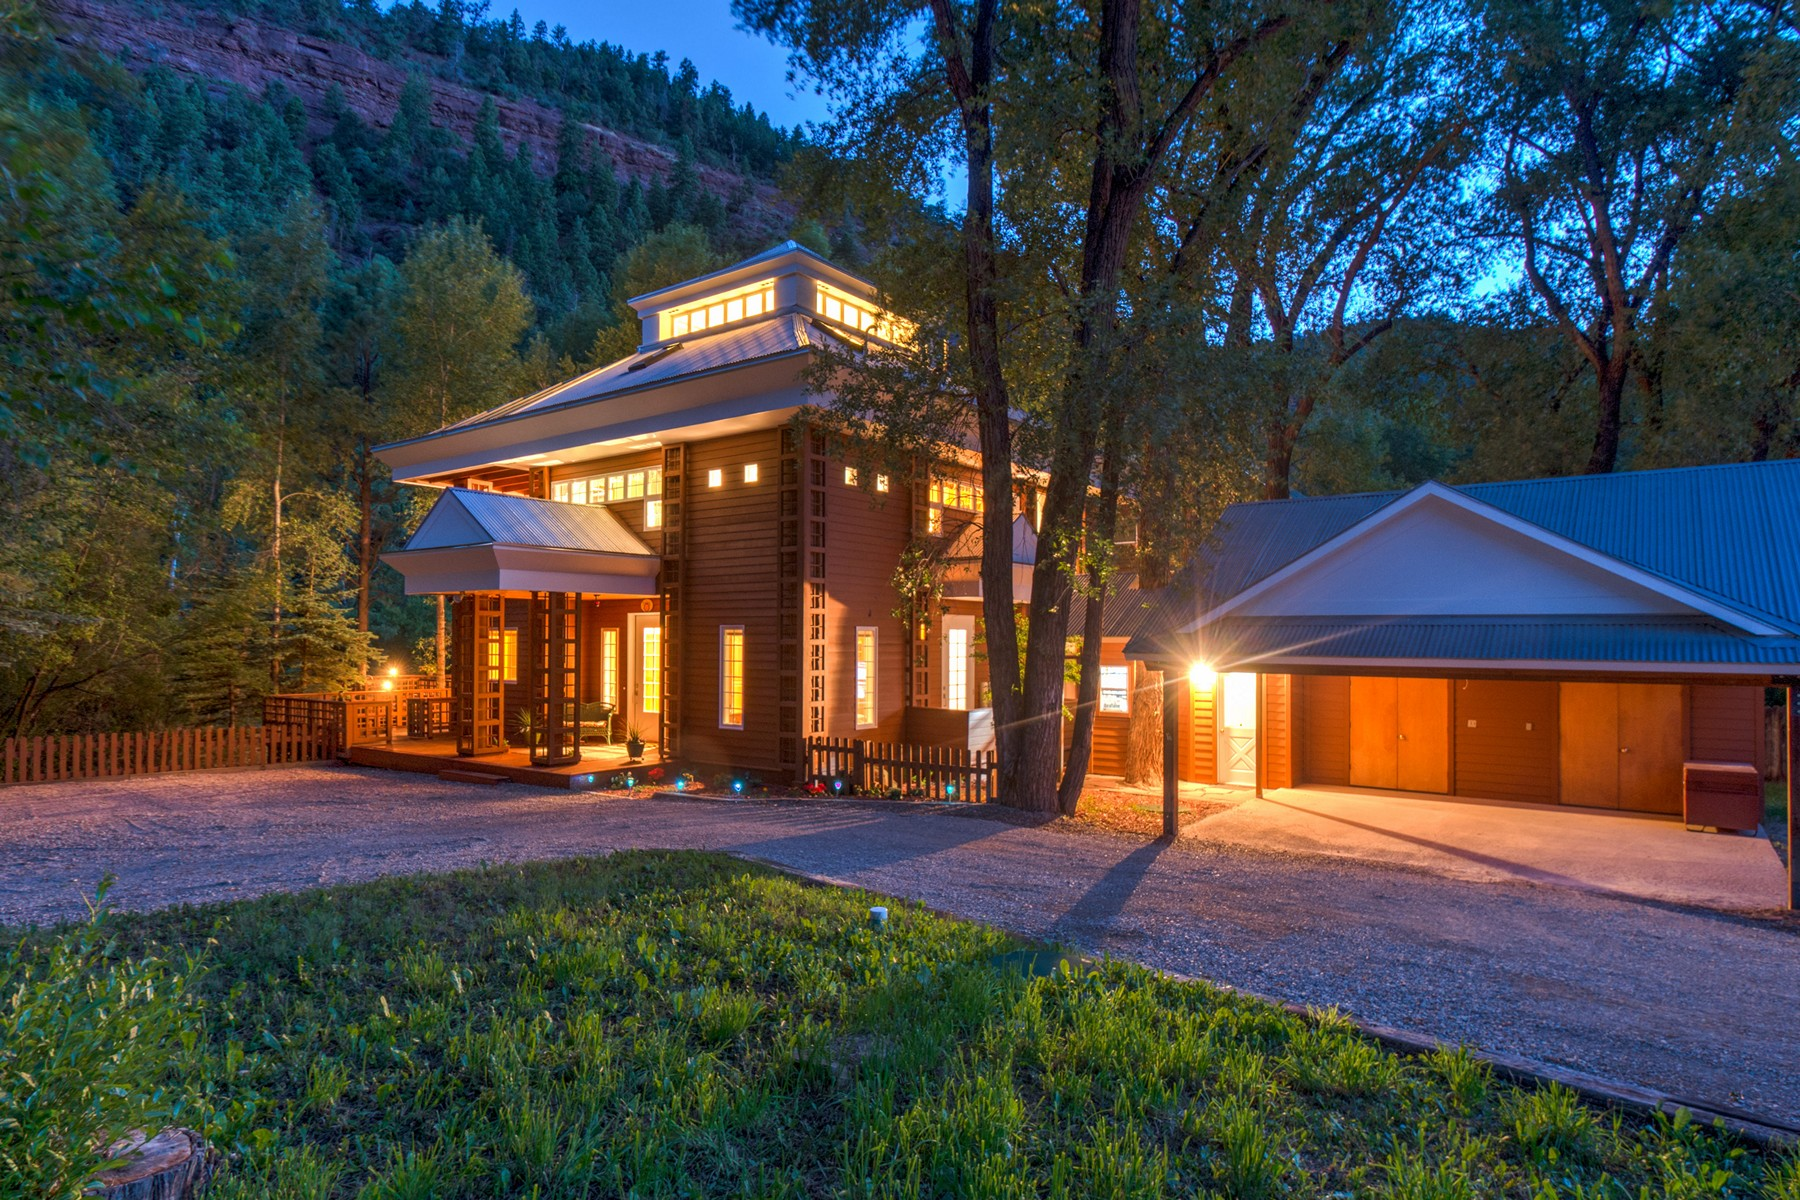 Single Family Home for Active at 22327 Highway 145 22327 Highway 145 Placerville, Colorado 81430 United States